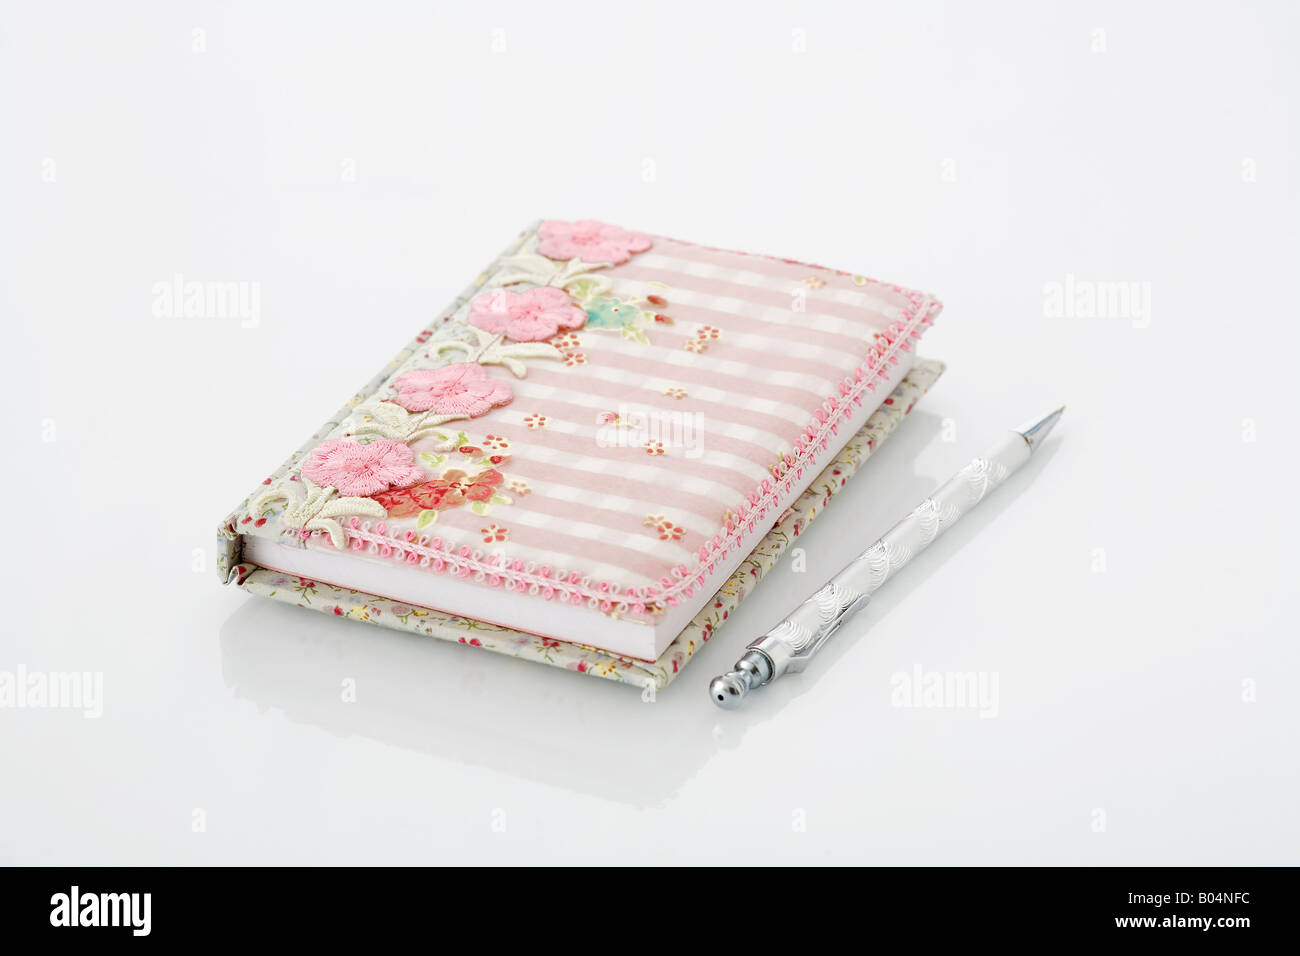 Pretty fabric covered journal on white background. - Stock Image